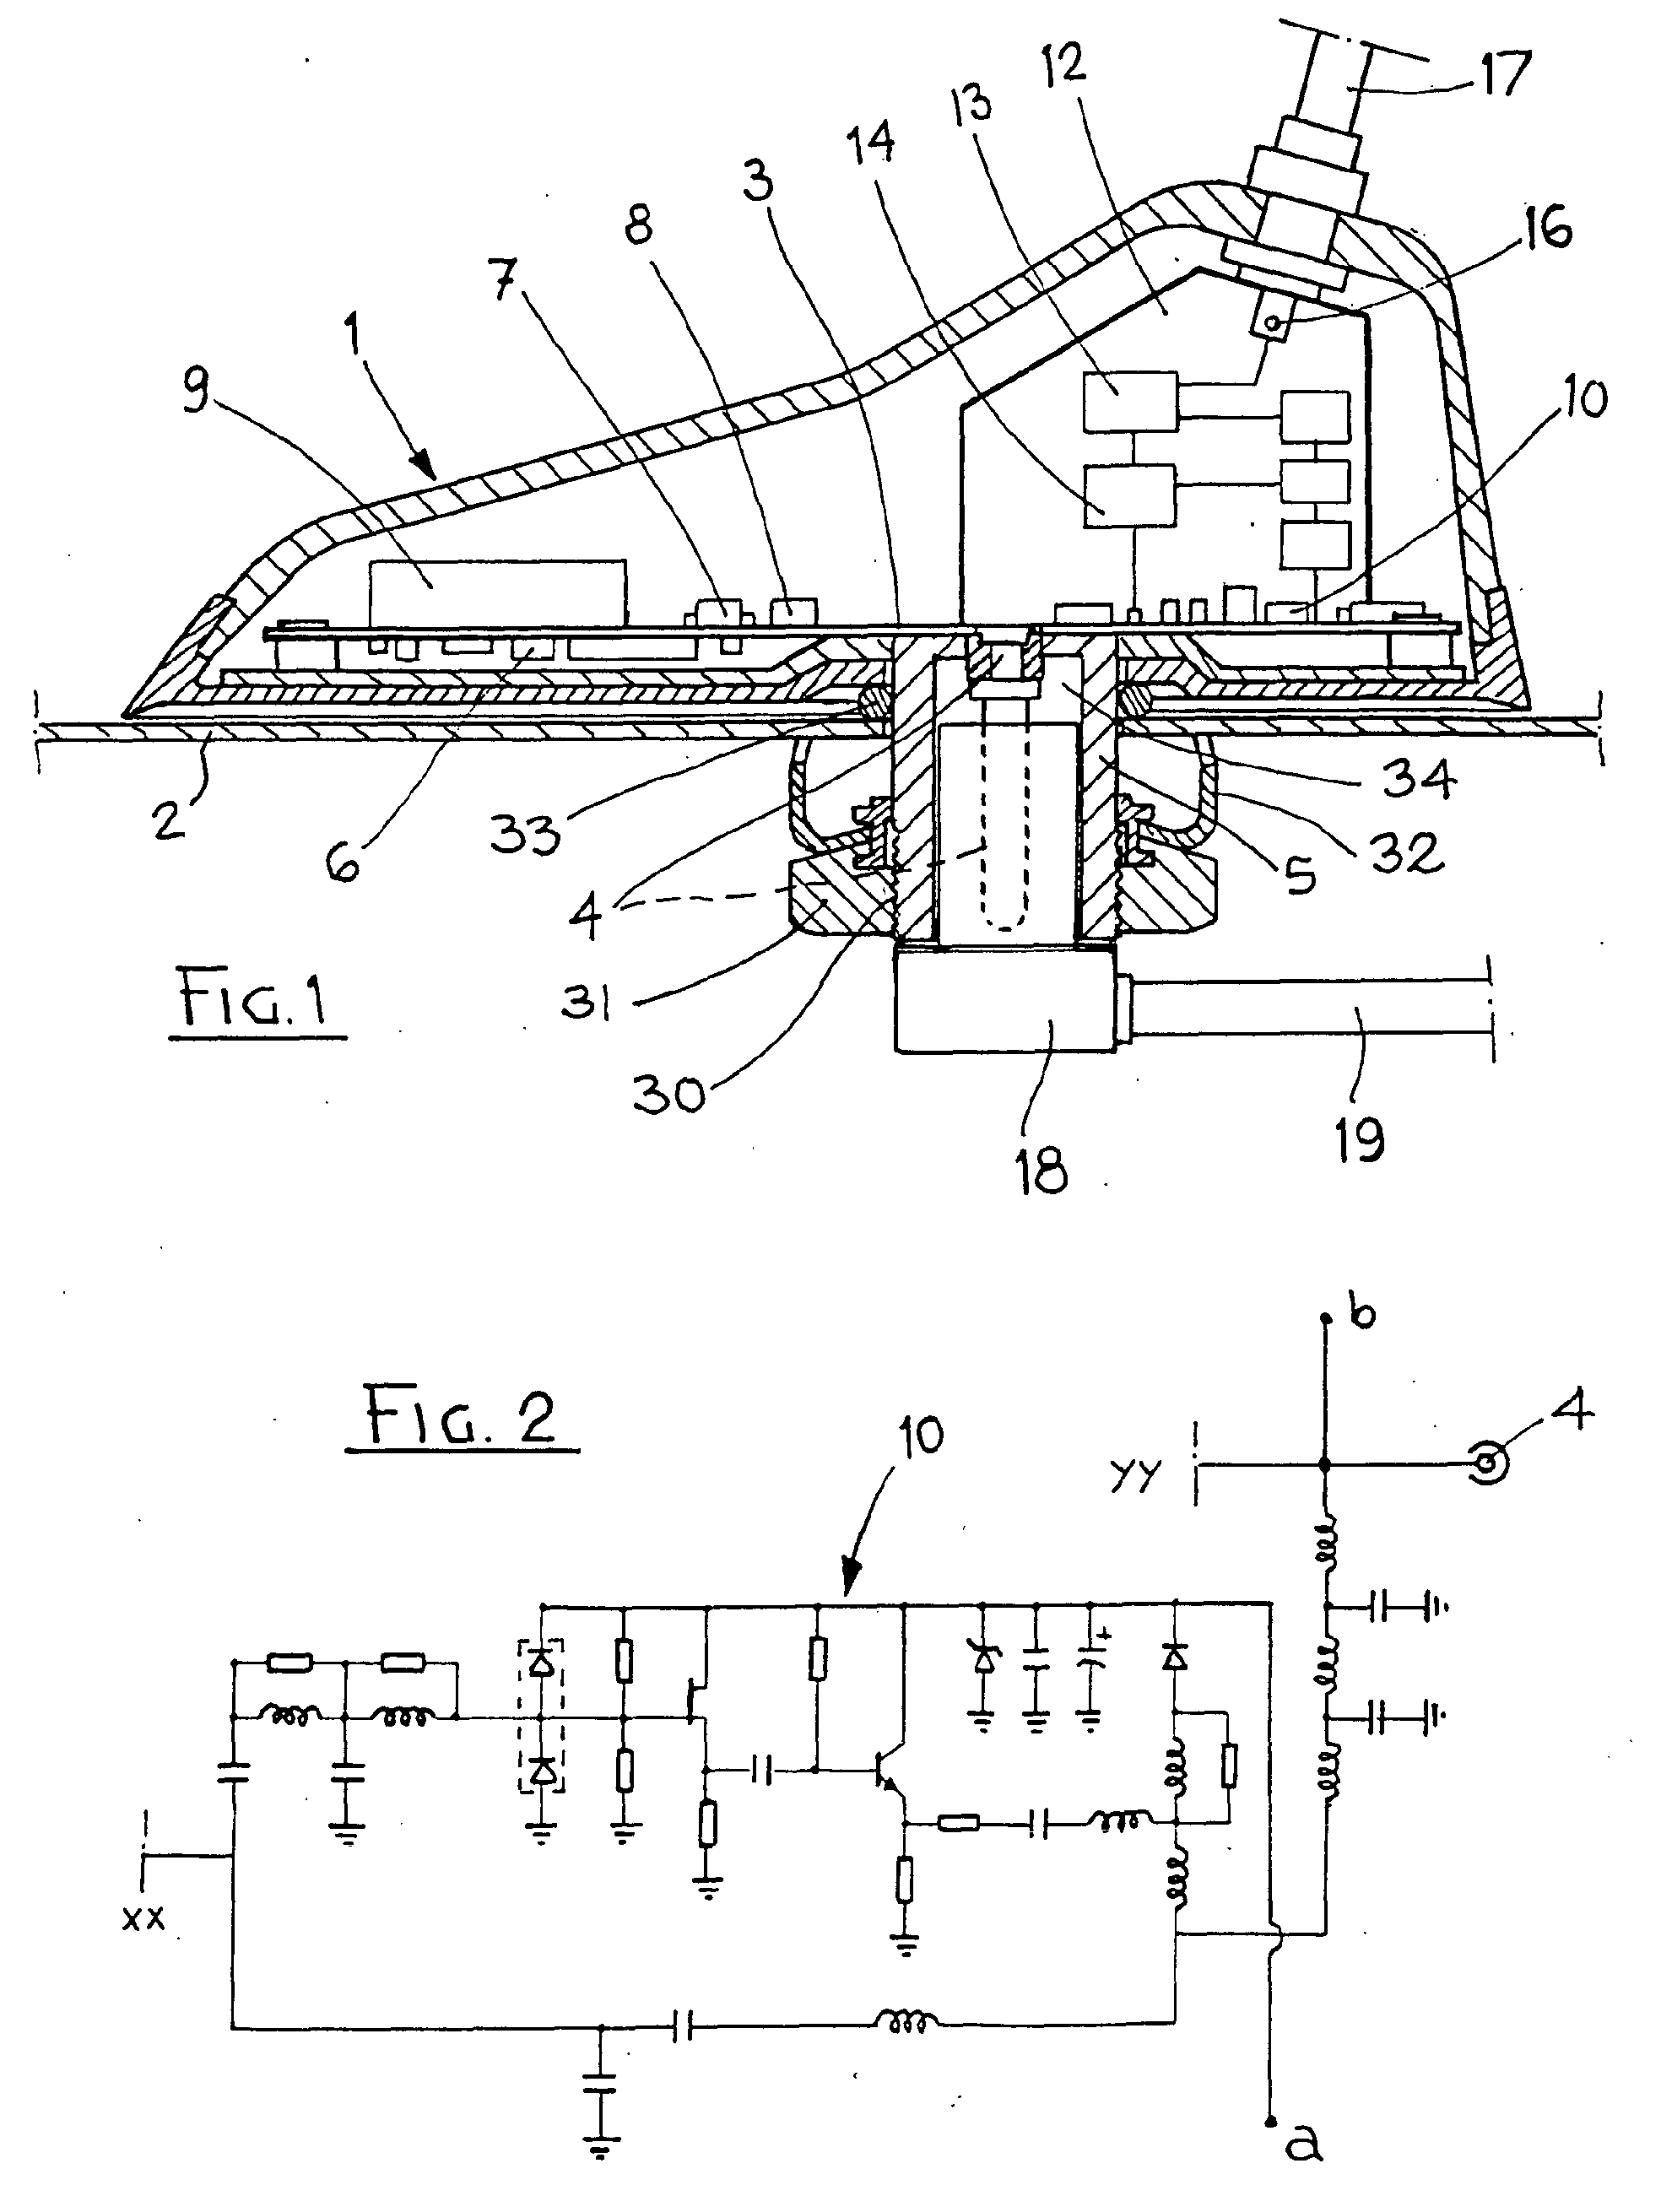 Patent Ep1286414a1 - Roof-mounted Multifunctional Car Antenna